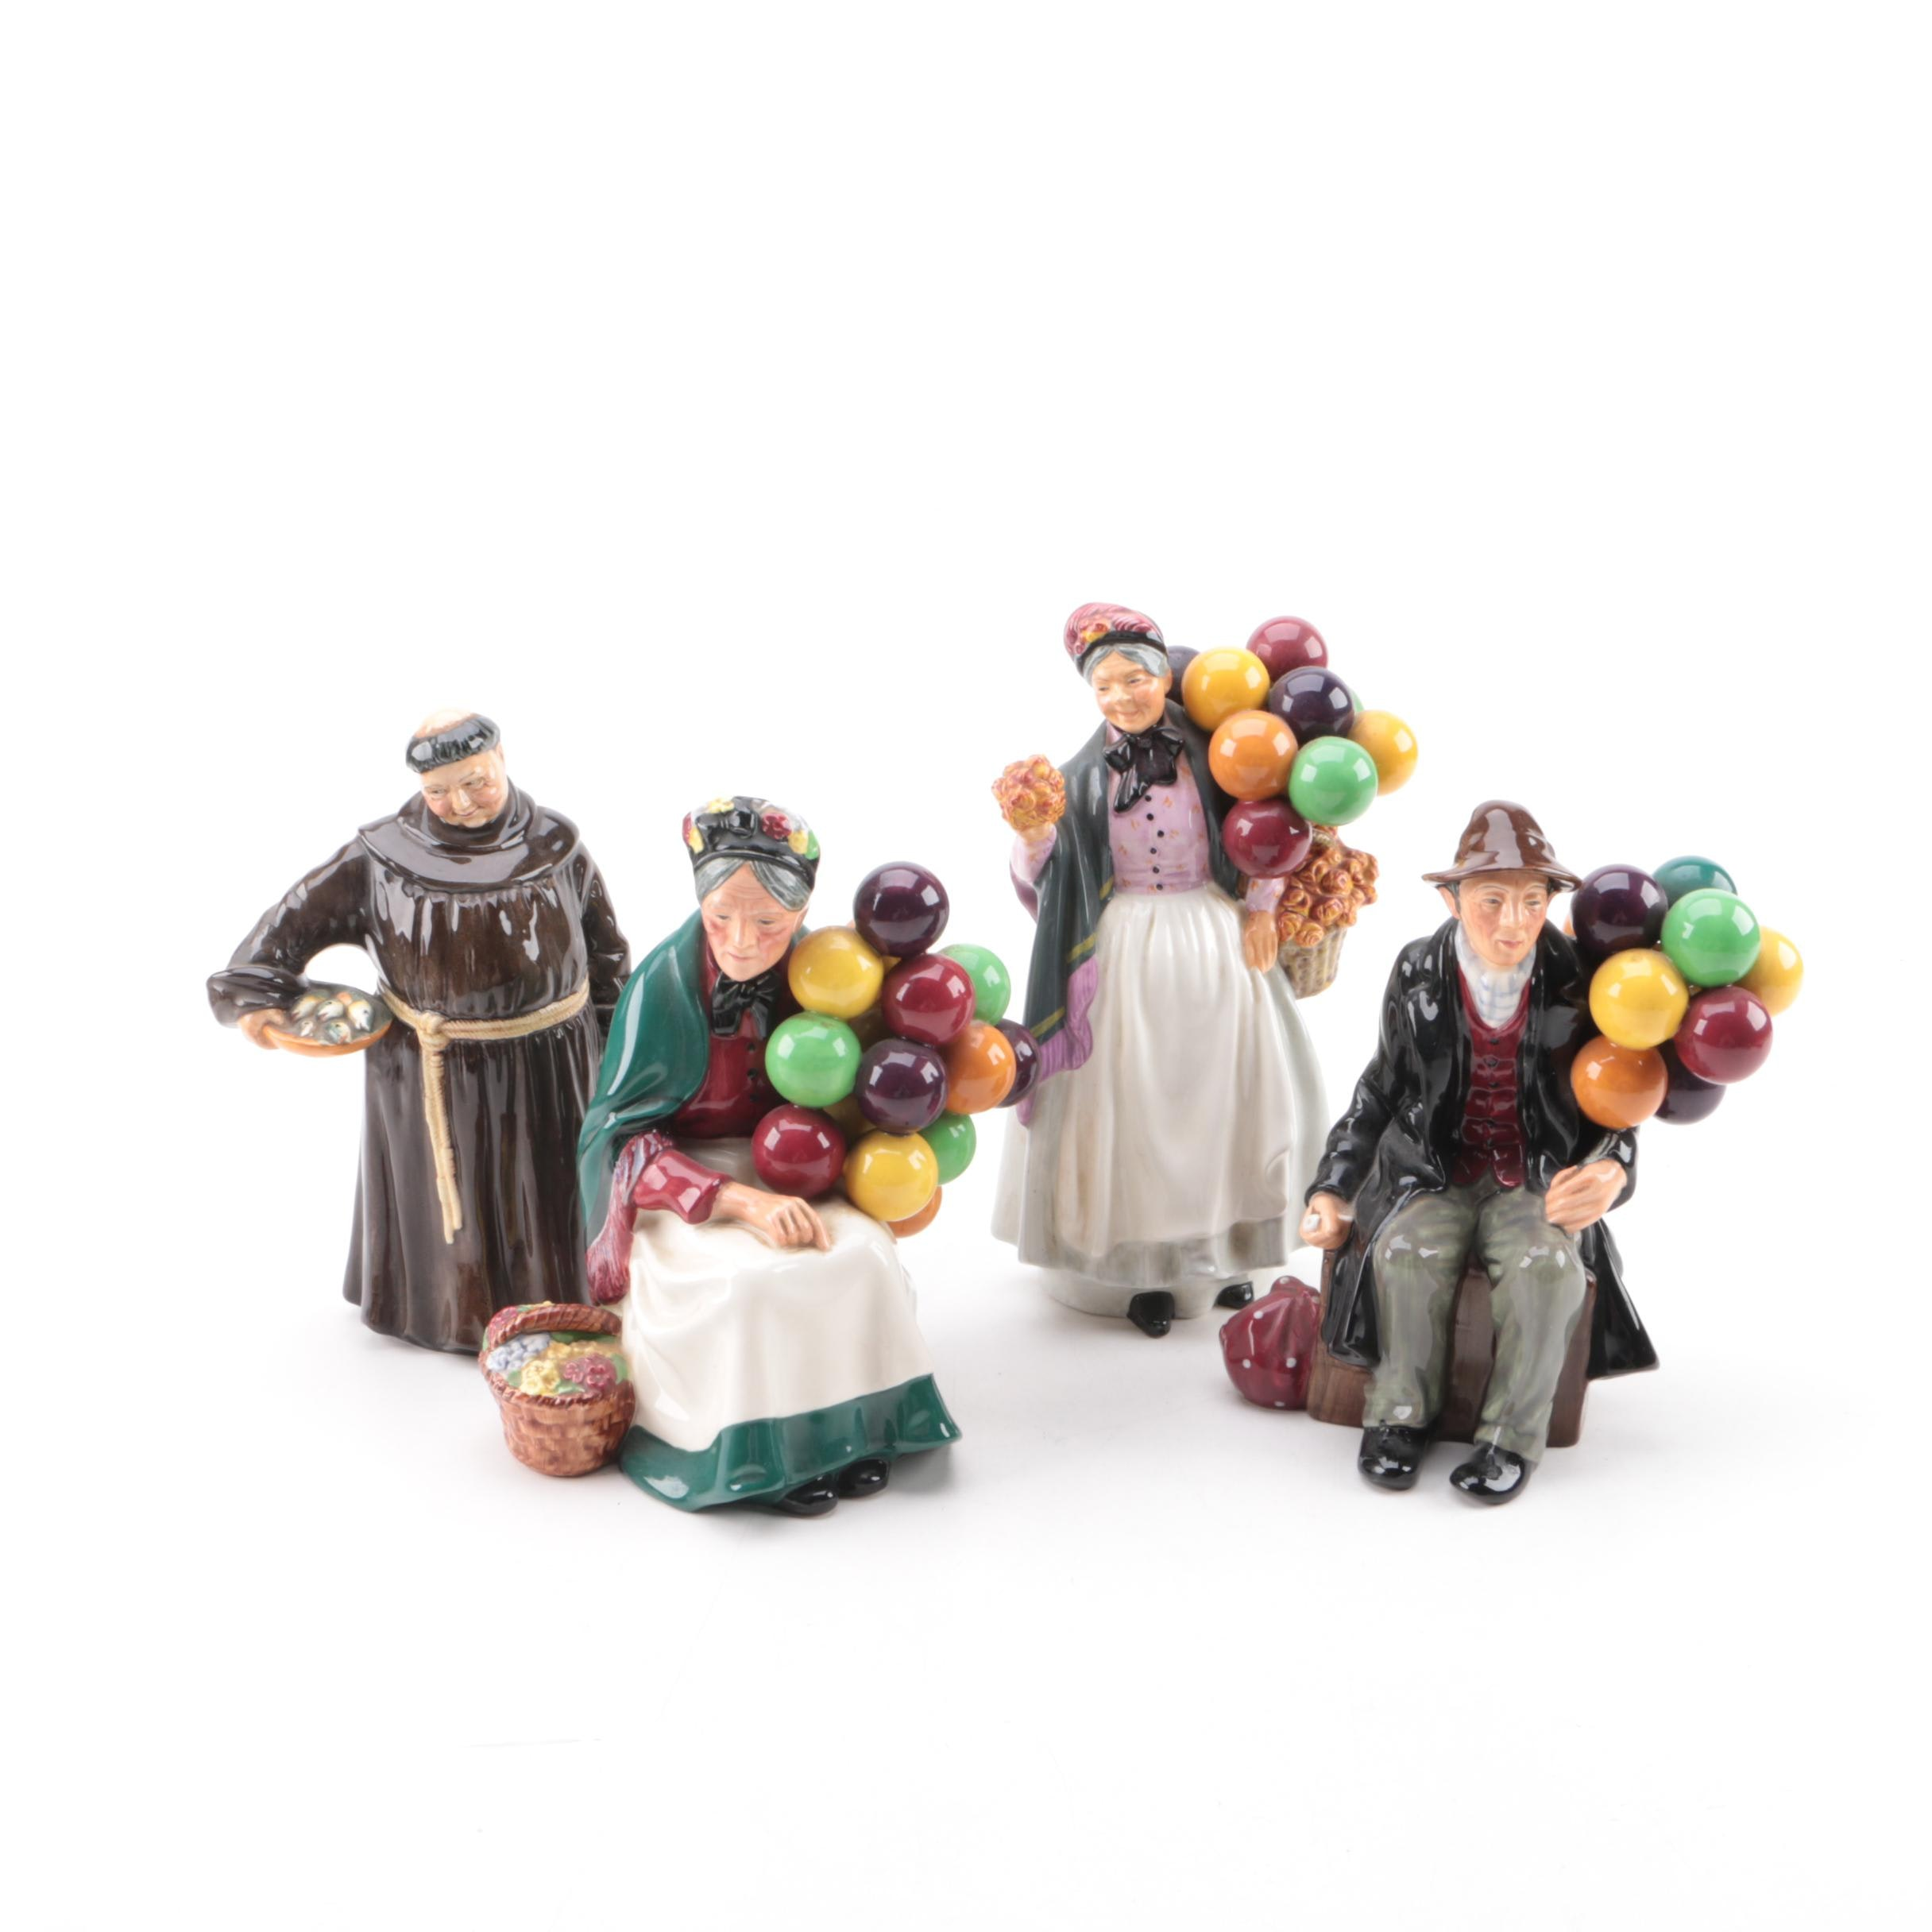 """1950s Royal Doulton Porcelain Figurines Including """"The Jovial Monk"""""""